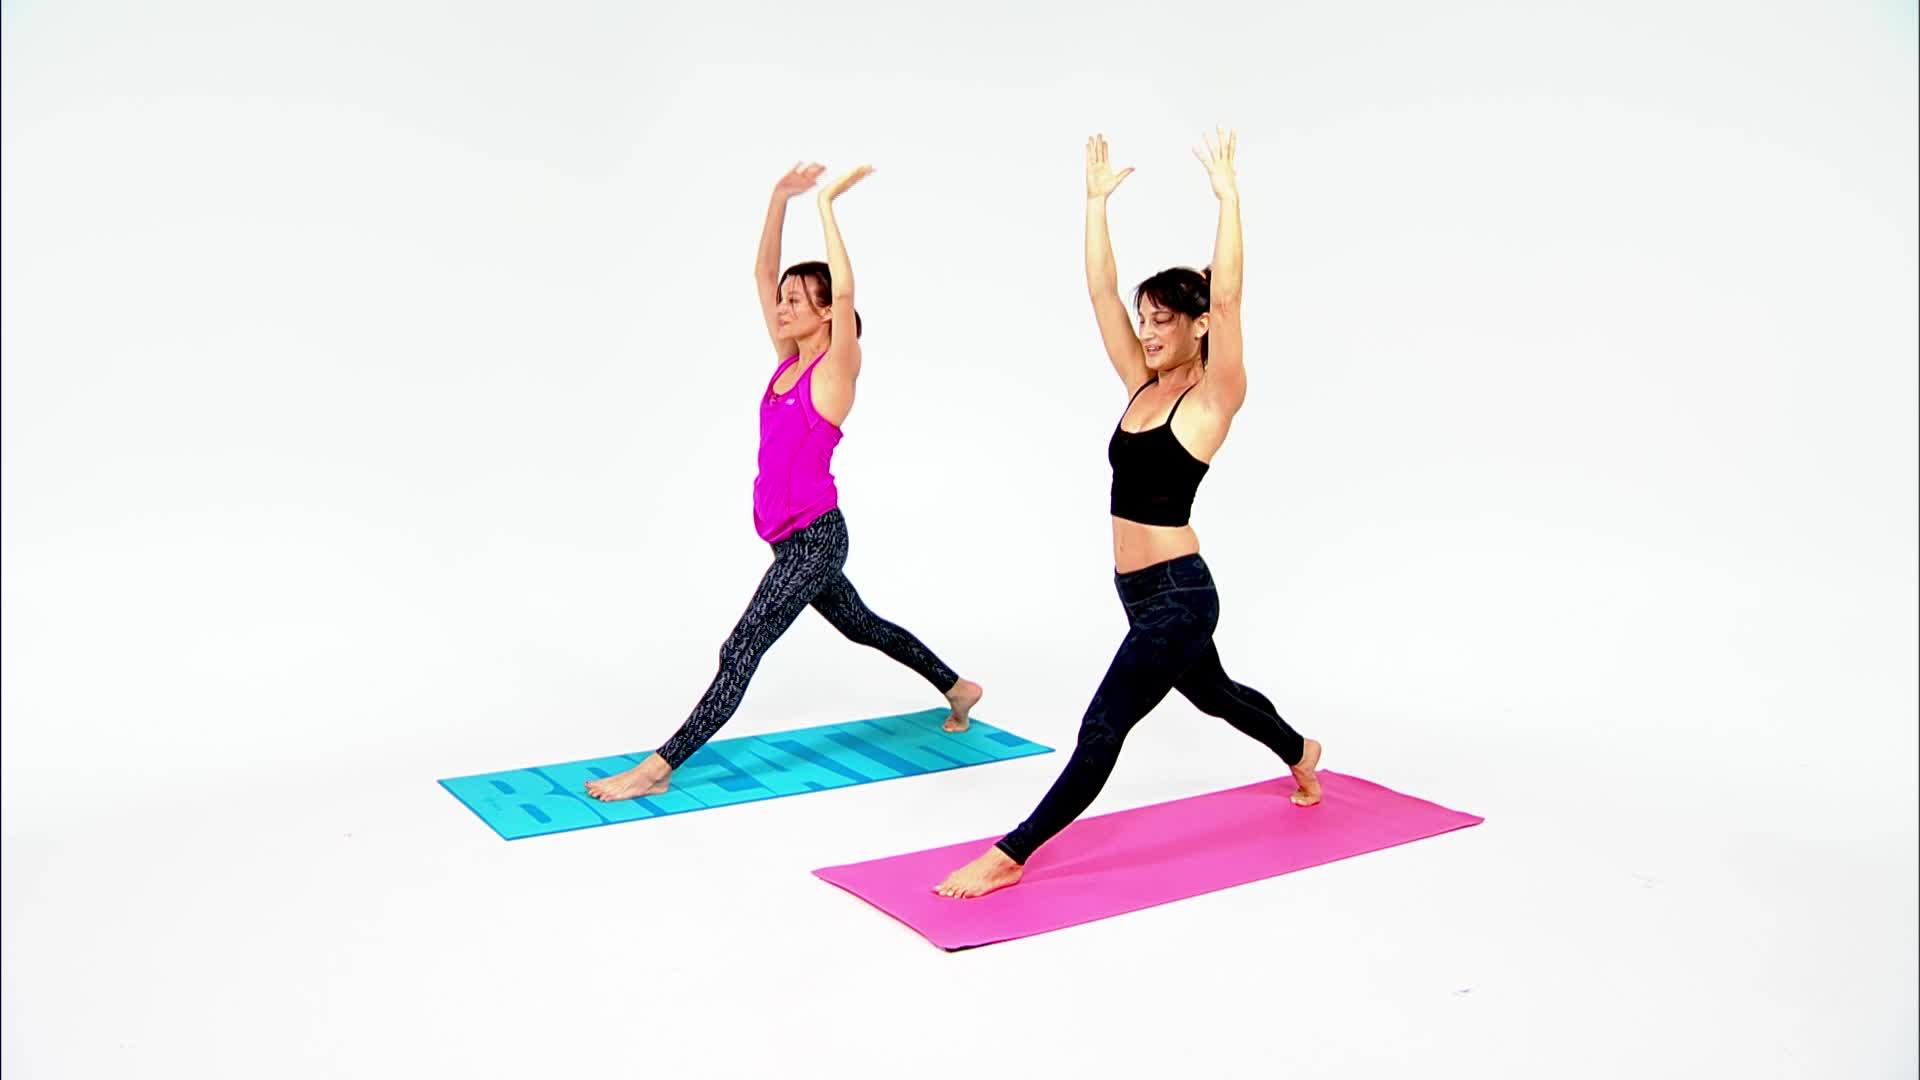 Finally, the Perfect HIIT Yoga Workout You've Been Waiting For